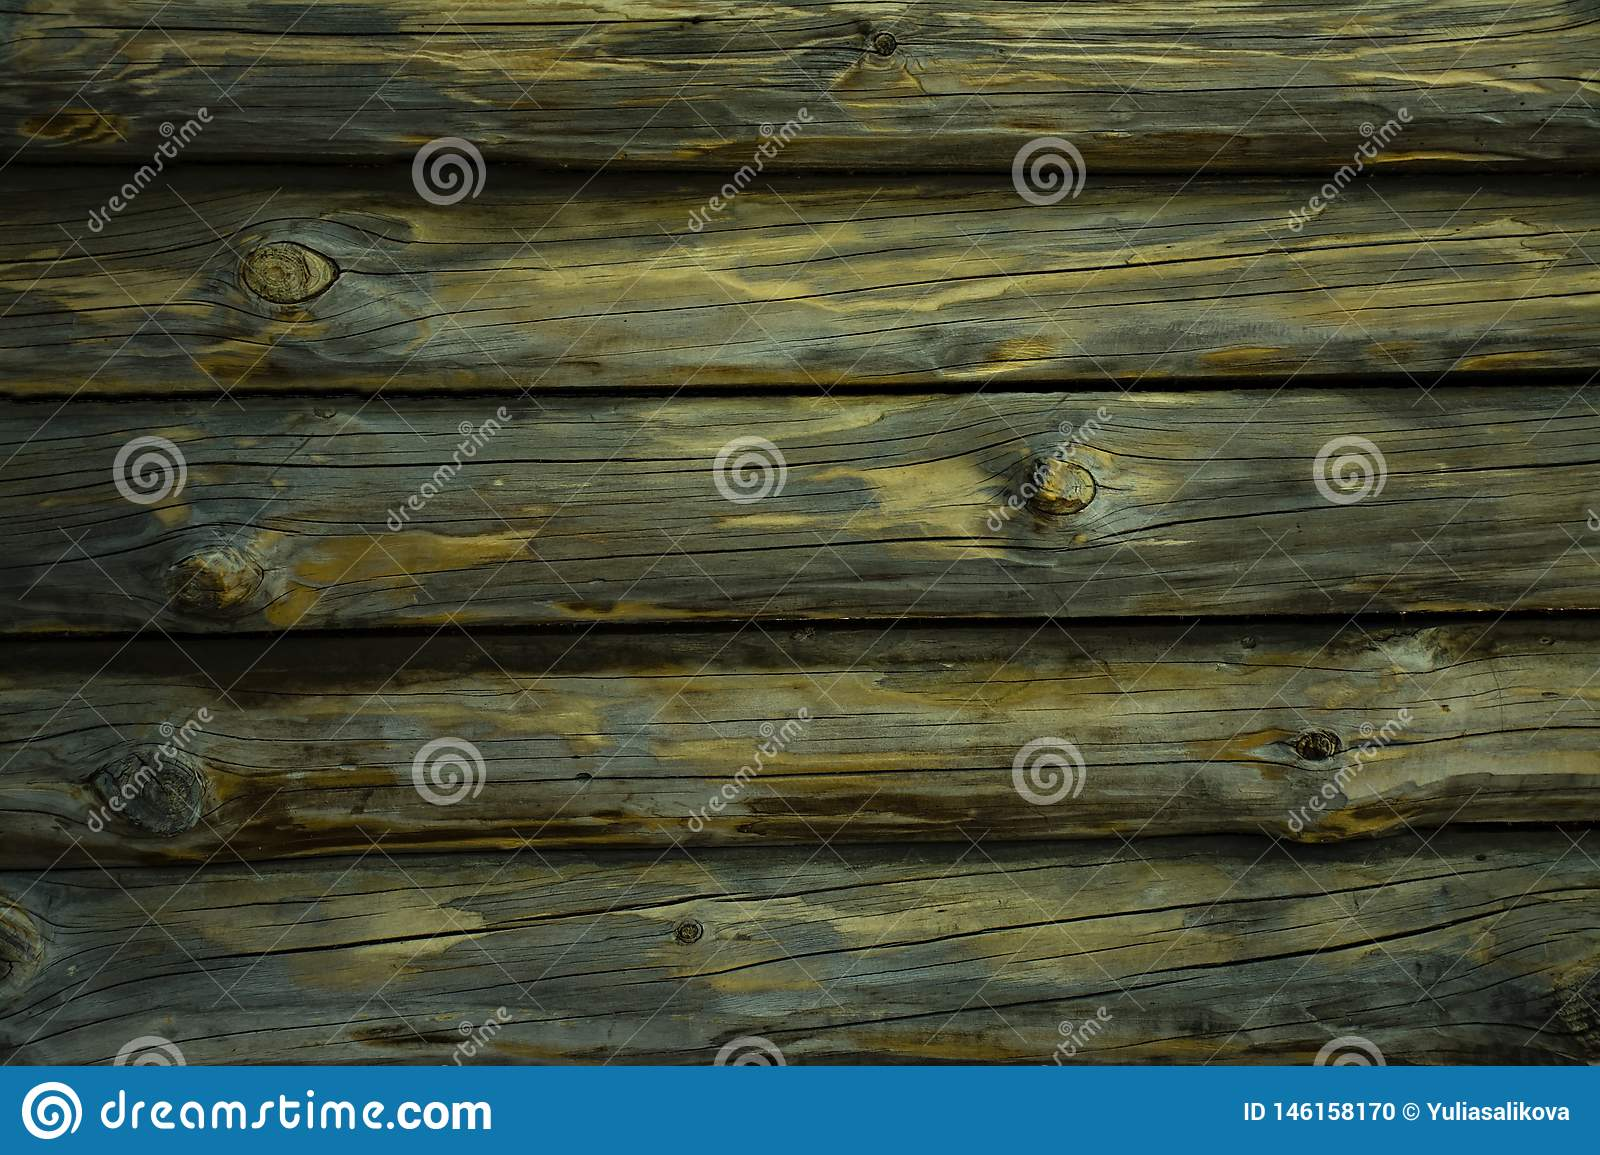 Textured wooden horizontal background with copy space. Horizontal decks. Place for text